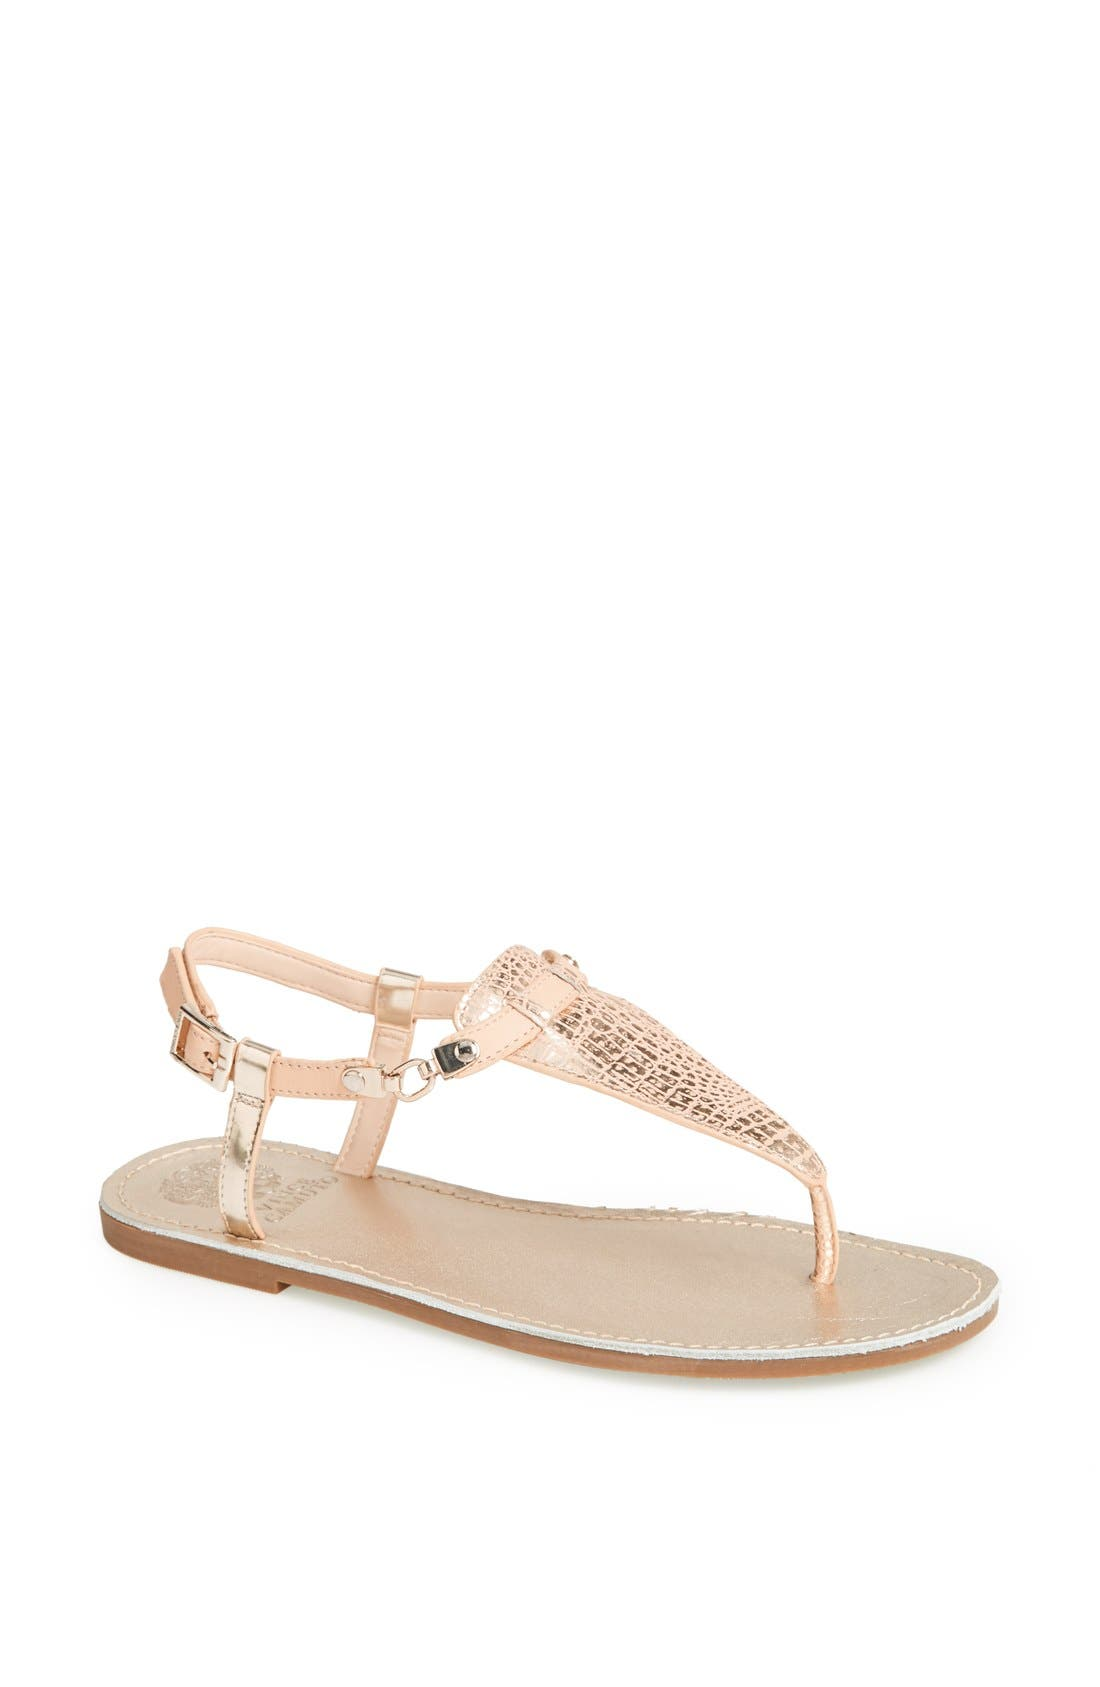 Alternate Image 1 Selected - Vince Camuto 'Itelli' Sandal